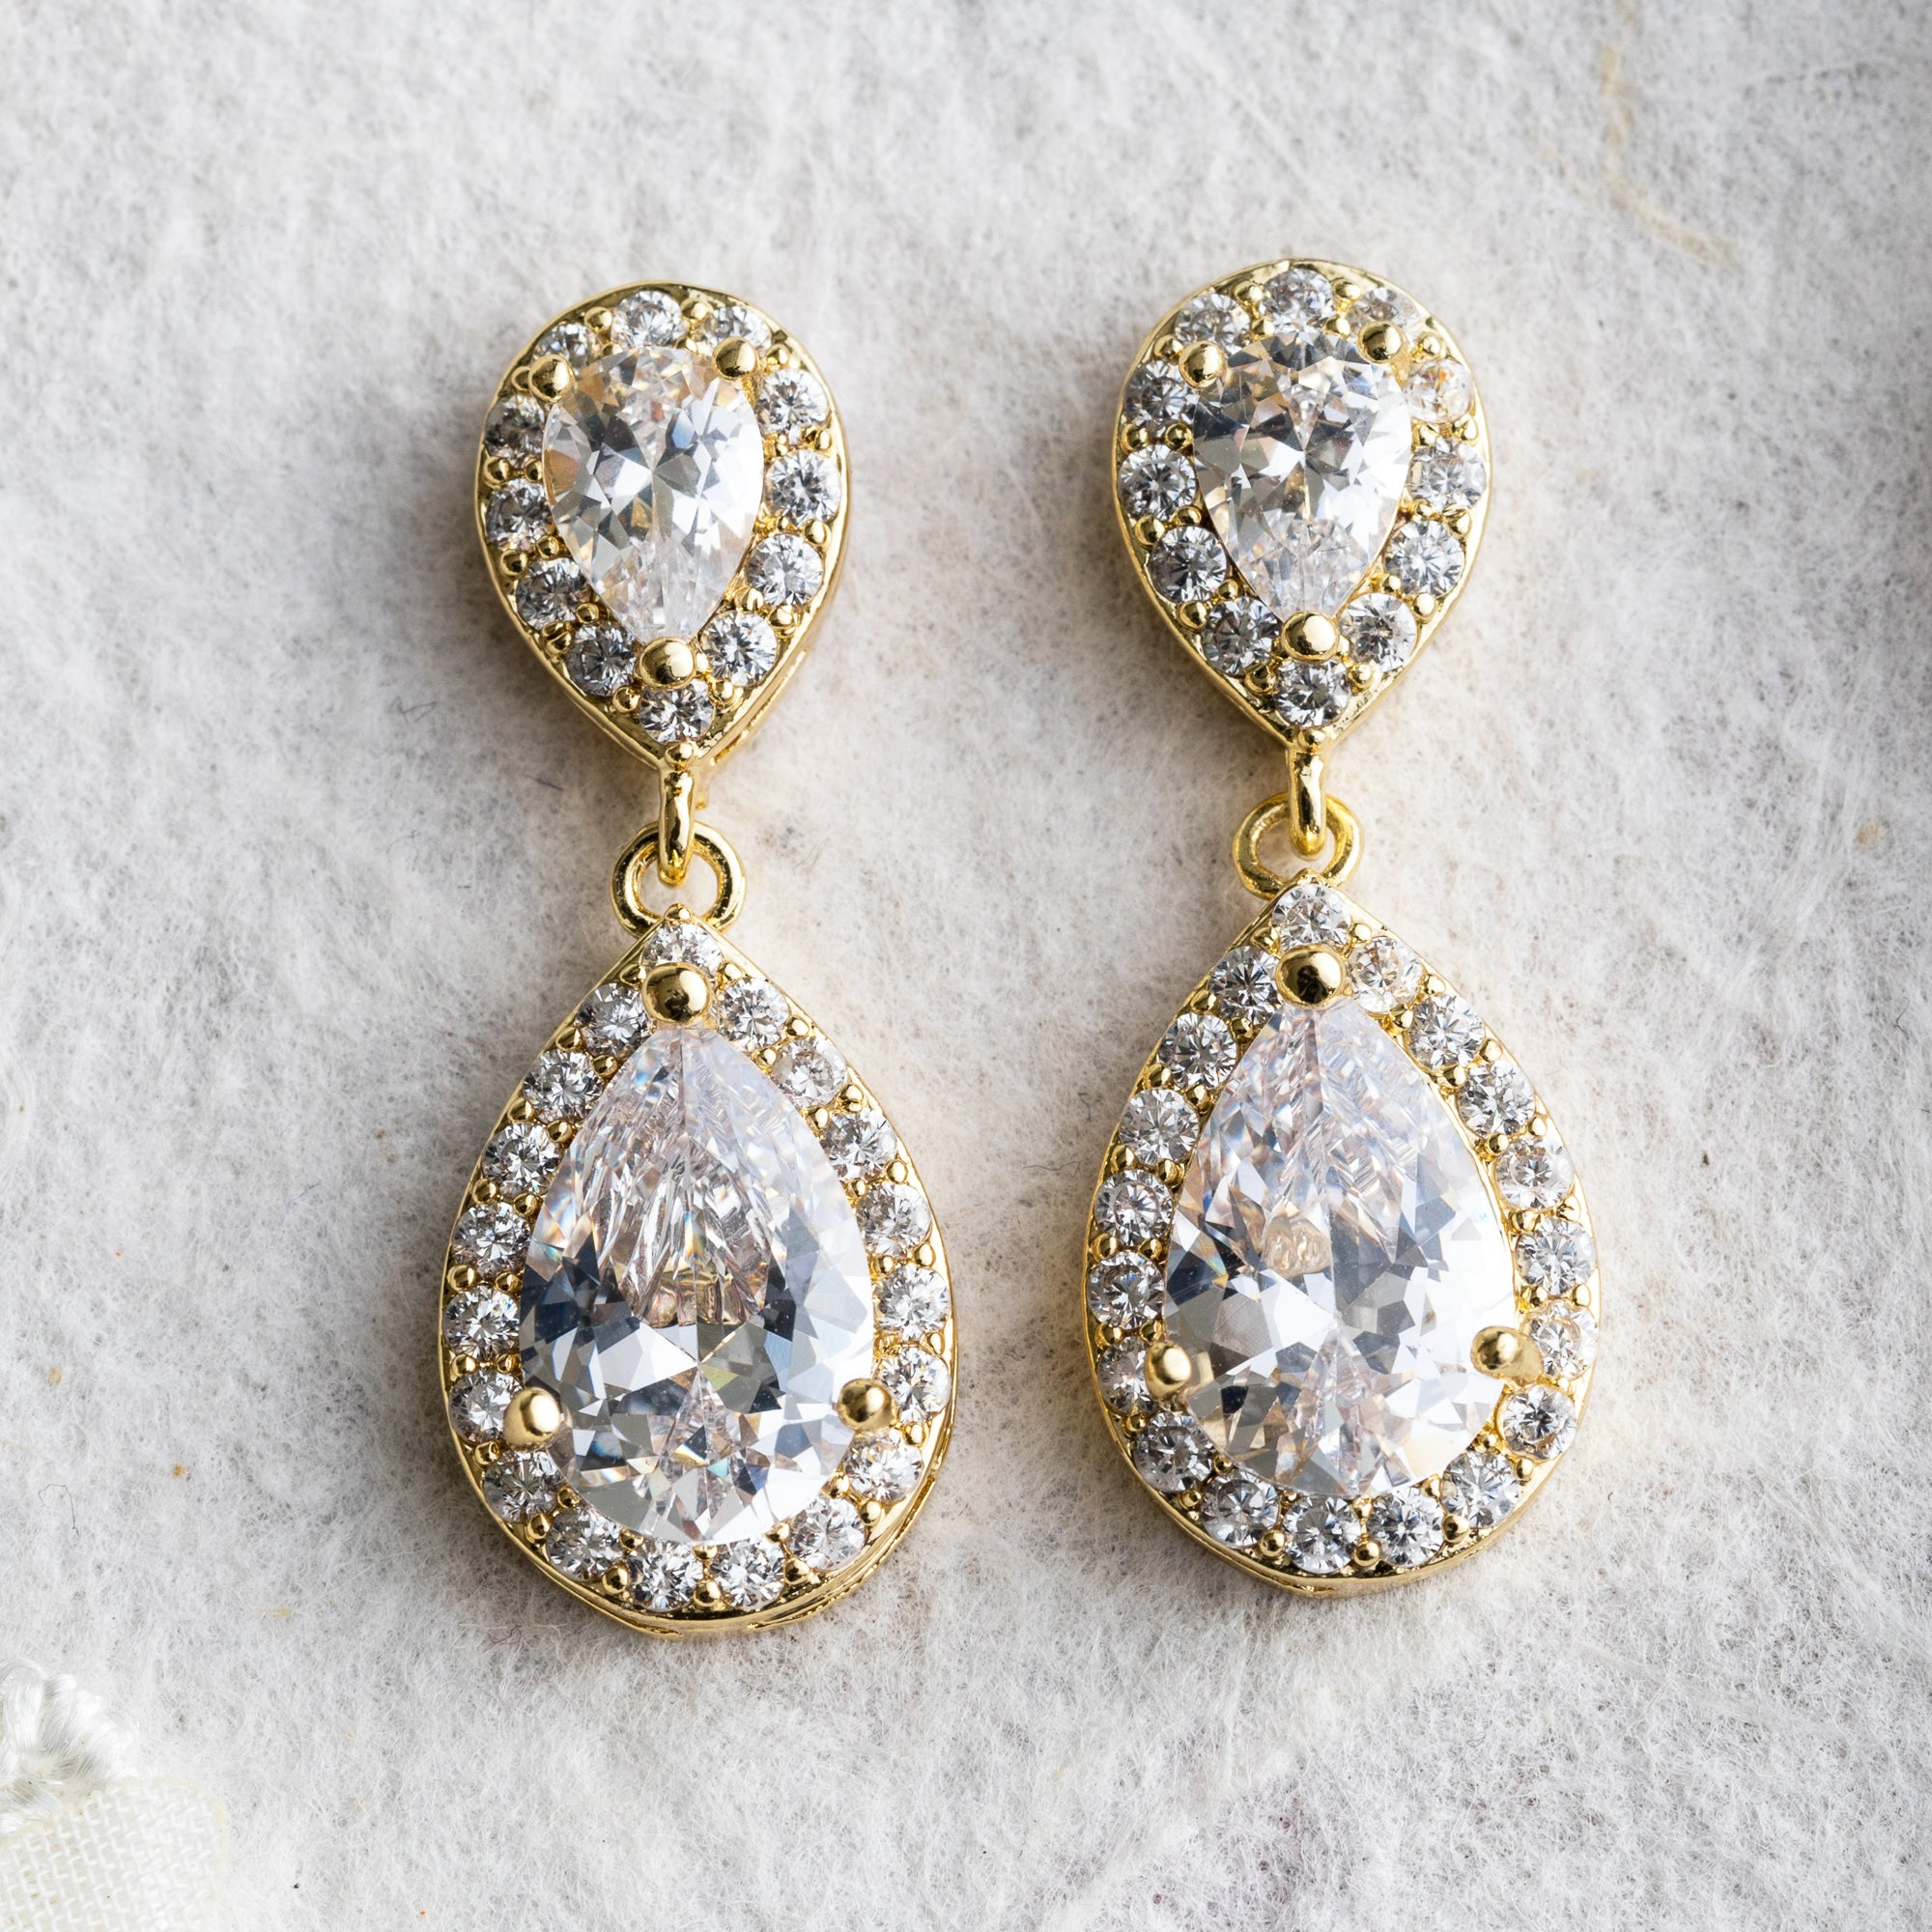 Preeti crystal and gold drop earrings